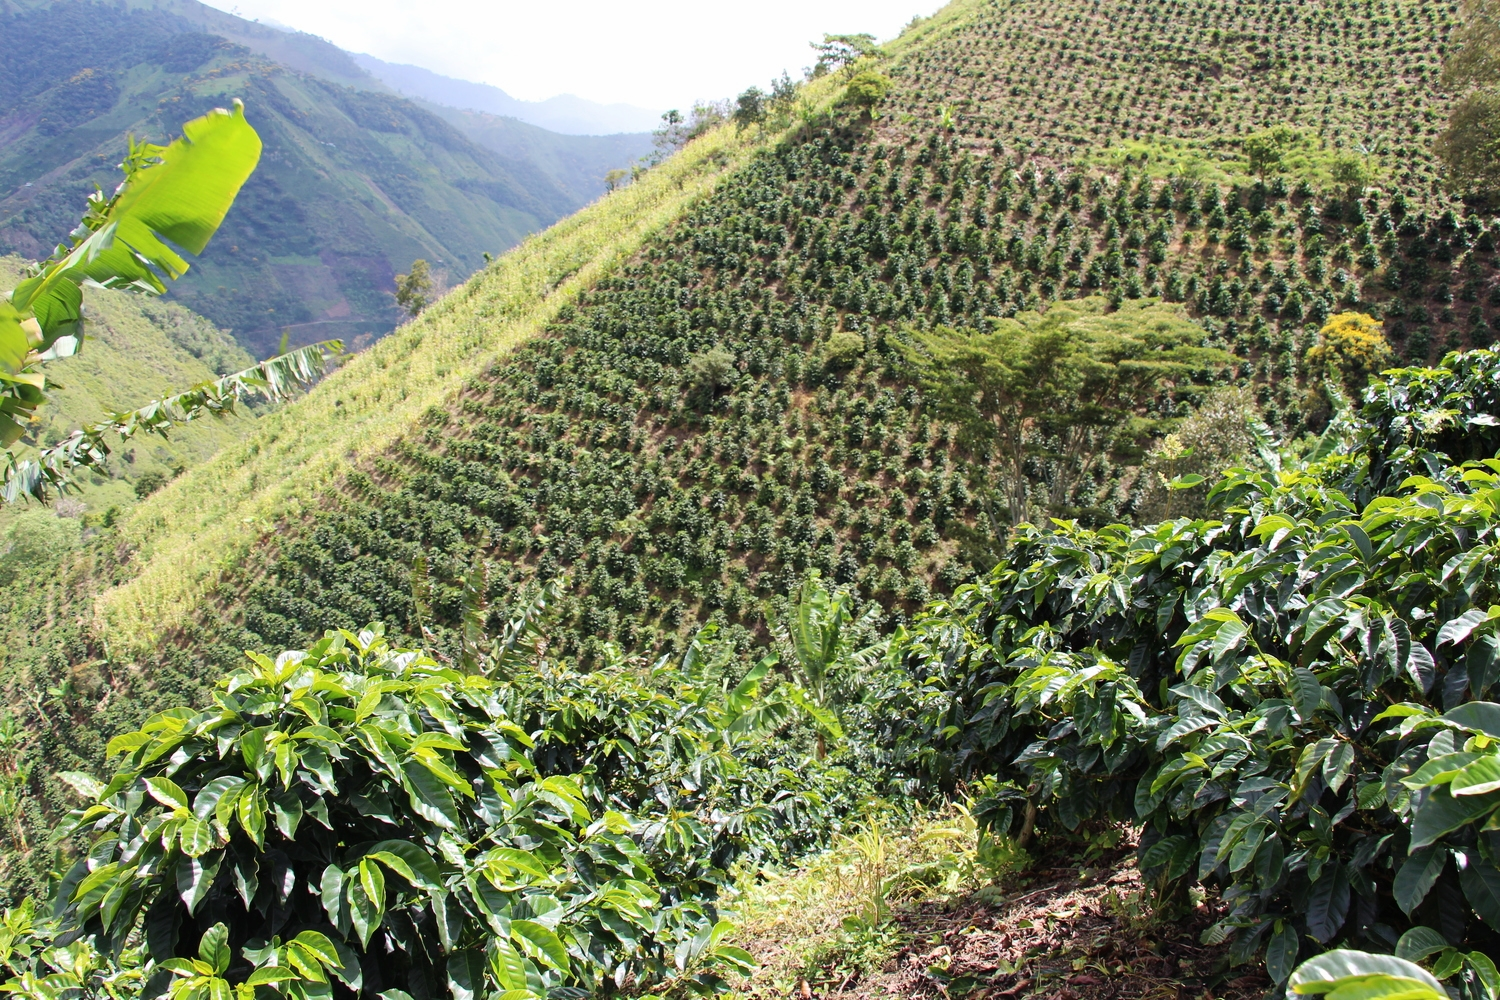 Coffee is cultivated on very steep hills - Finca Buenavista